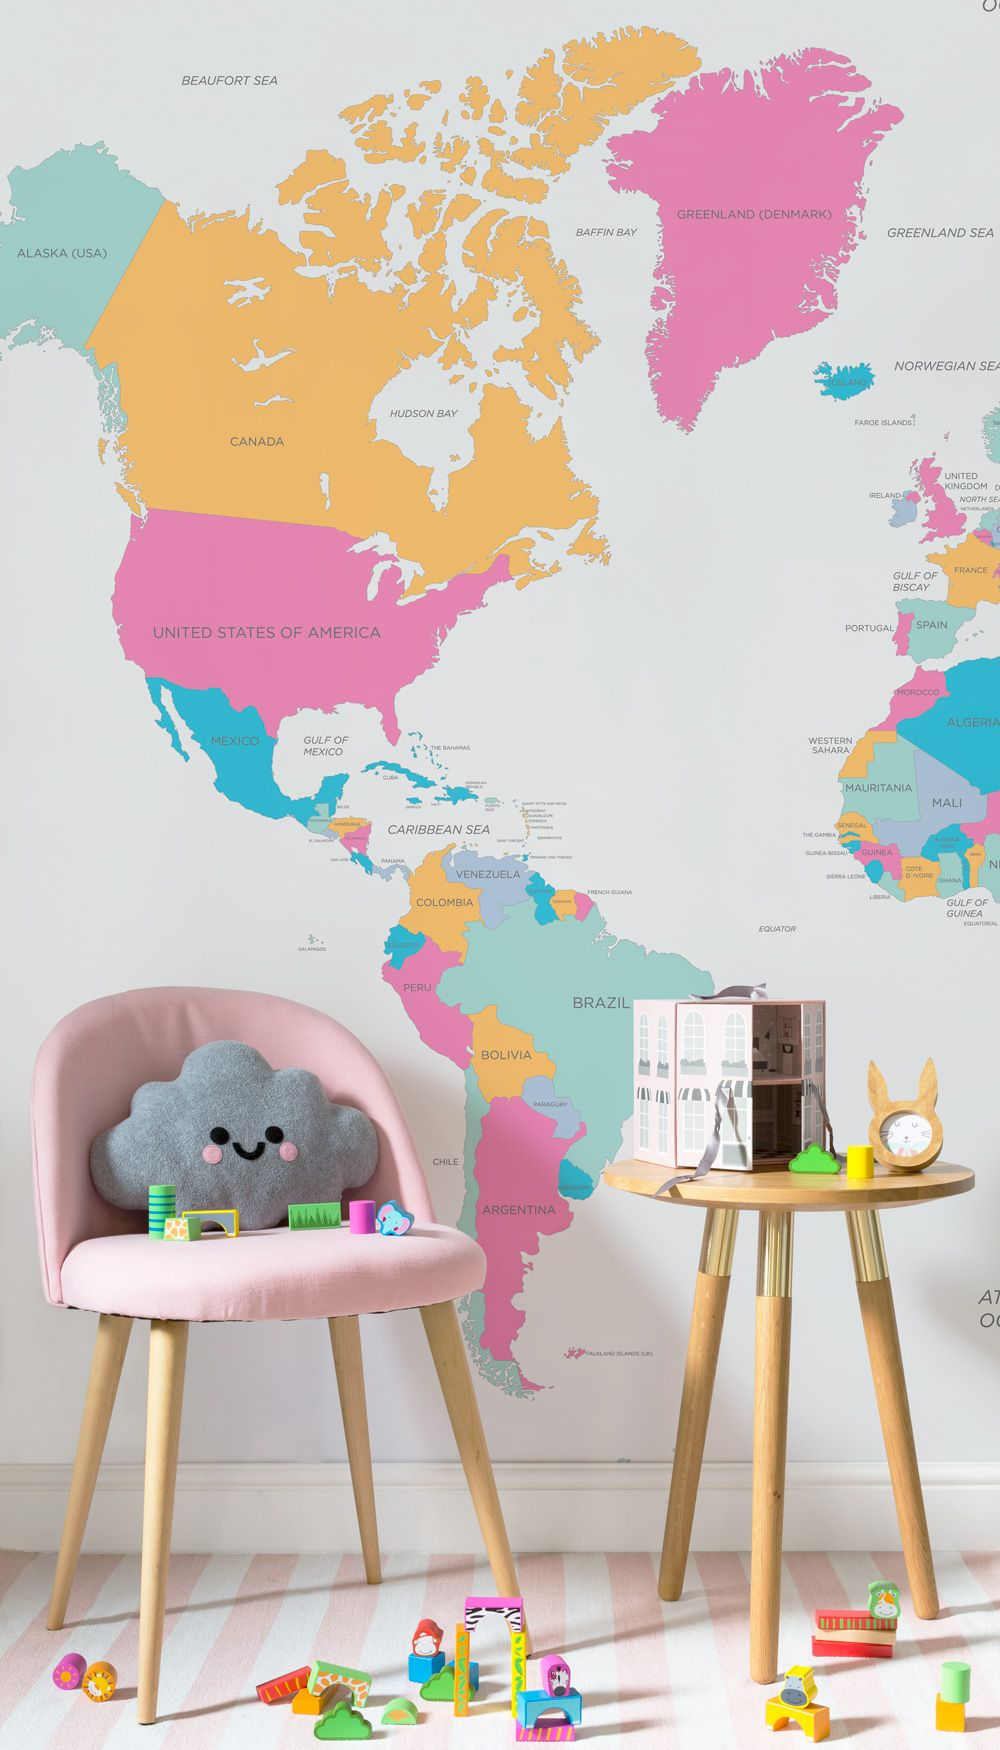 On the lookout for fun wallpaper ideas this bright and wonderful on the lookout for fun wallpaper ideas this bright and wonderful map wallpaper mural is both beautiful and educational teach your child about the world in gumiabroncs Image collections